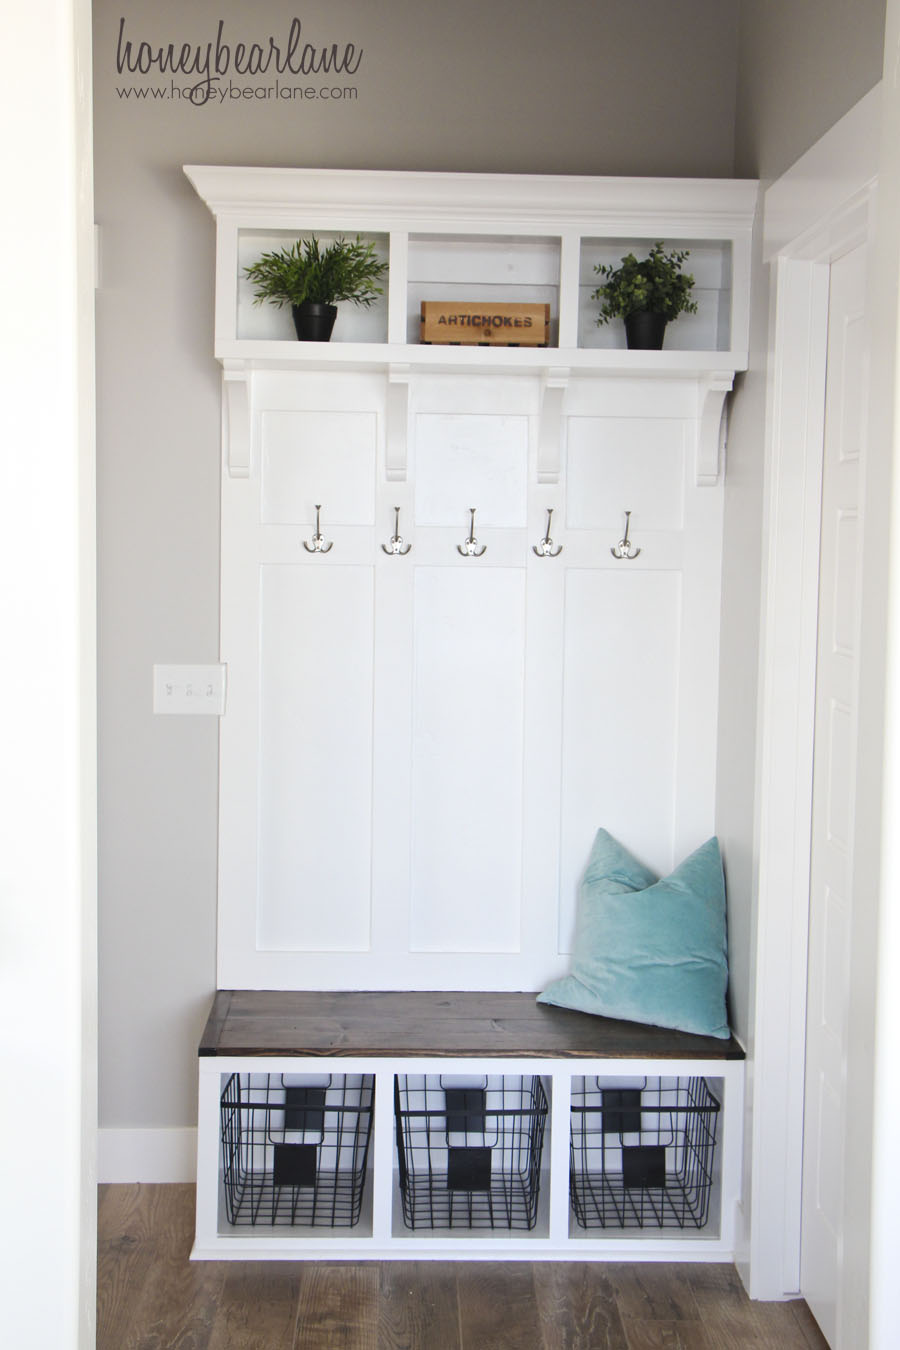 Tiny Home Designs: DIY Mudroom Bench Part 2